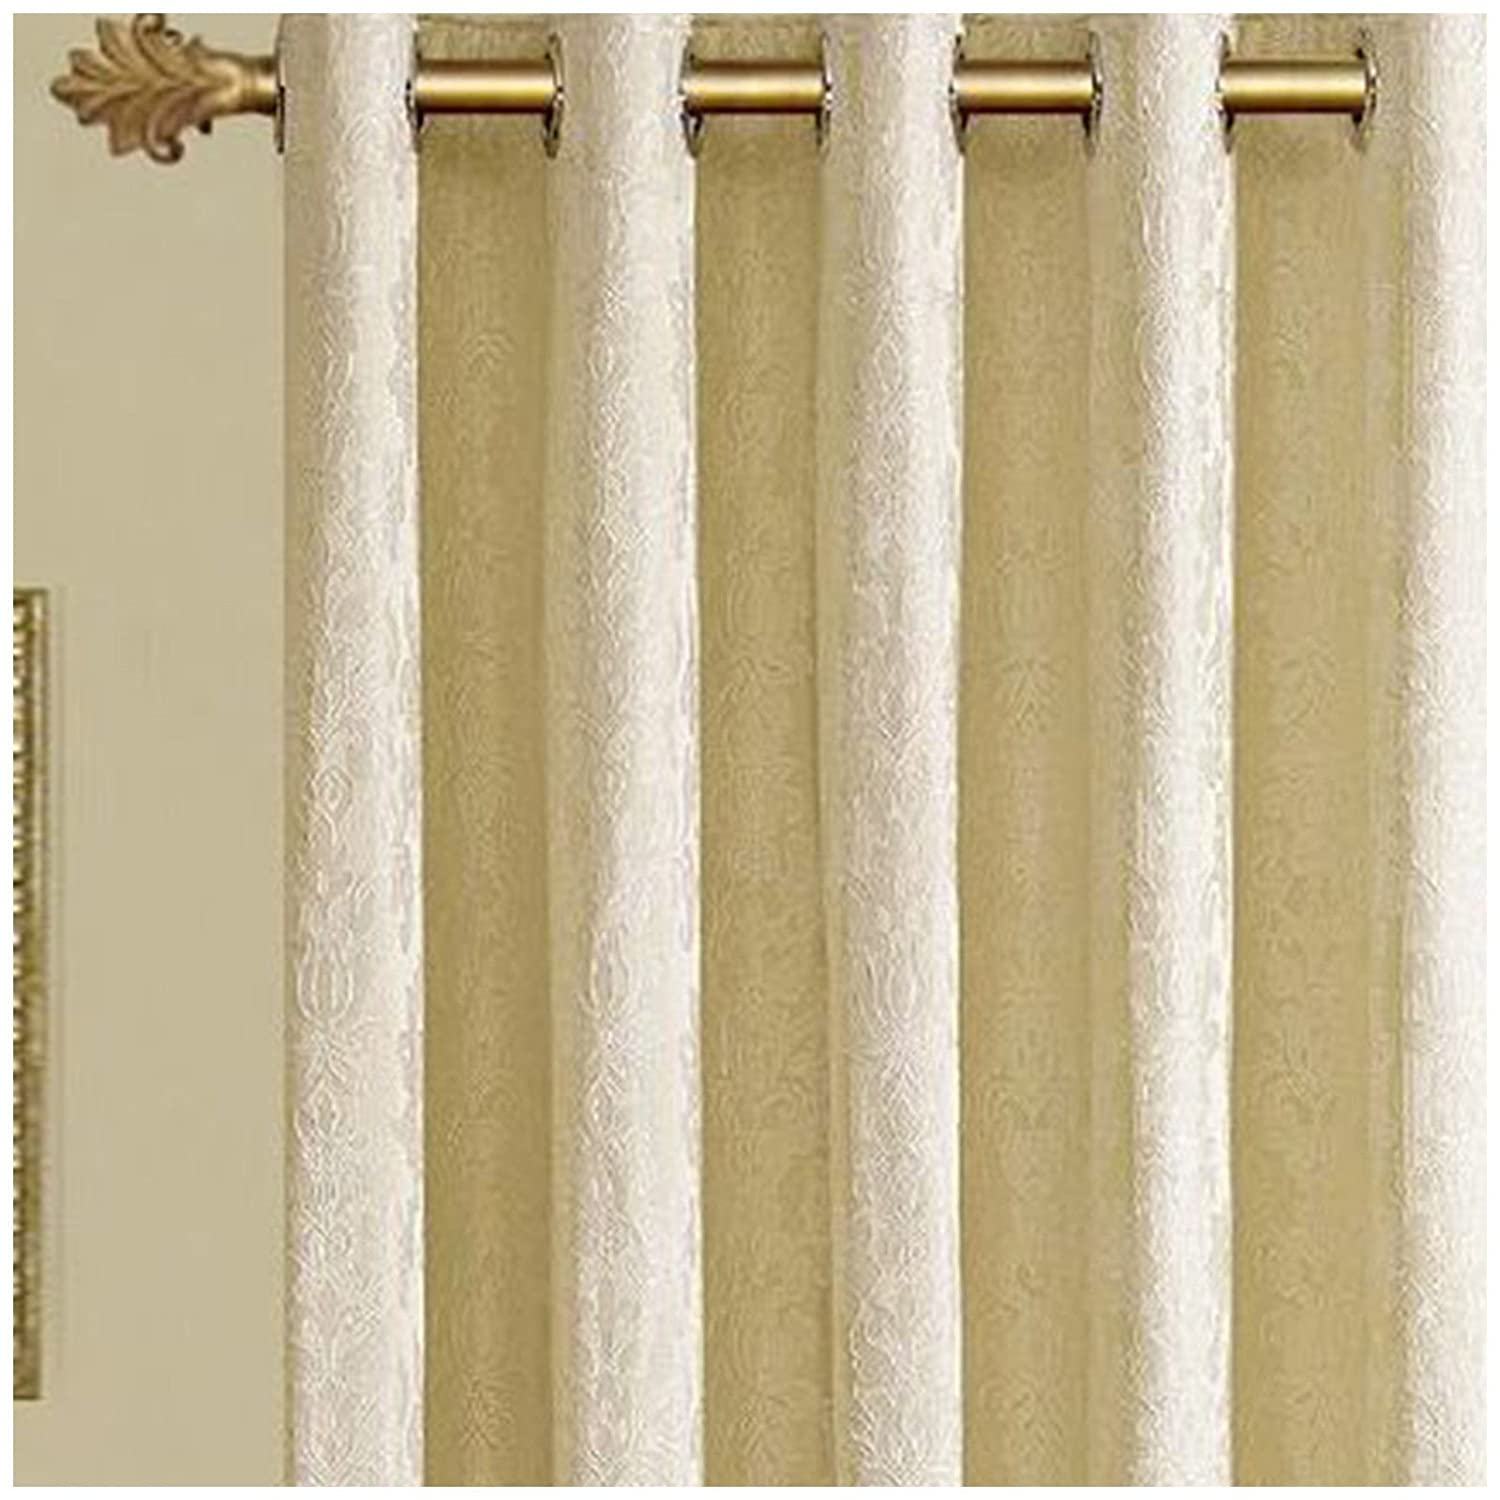 Luxury Jacquard Curtains Fully Lined Lined Lined Ready Made Tape Ring Top Eyelet Curtains 3a5a36